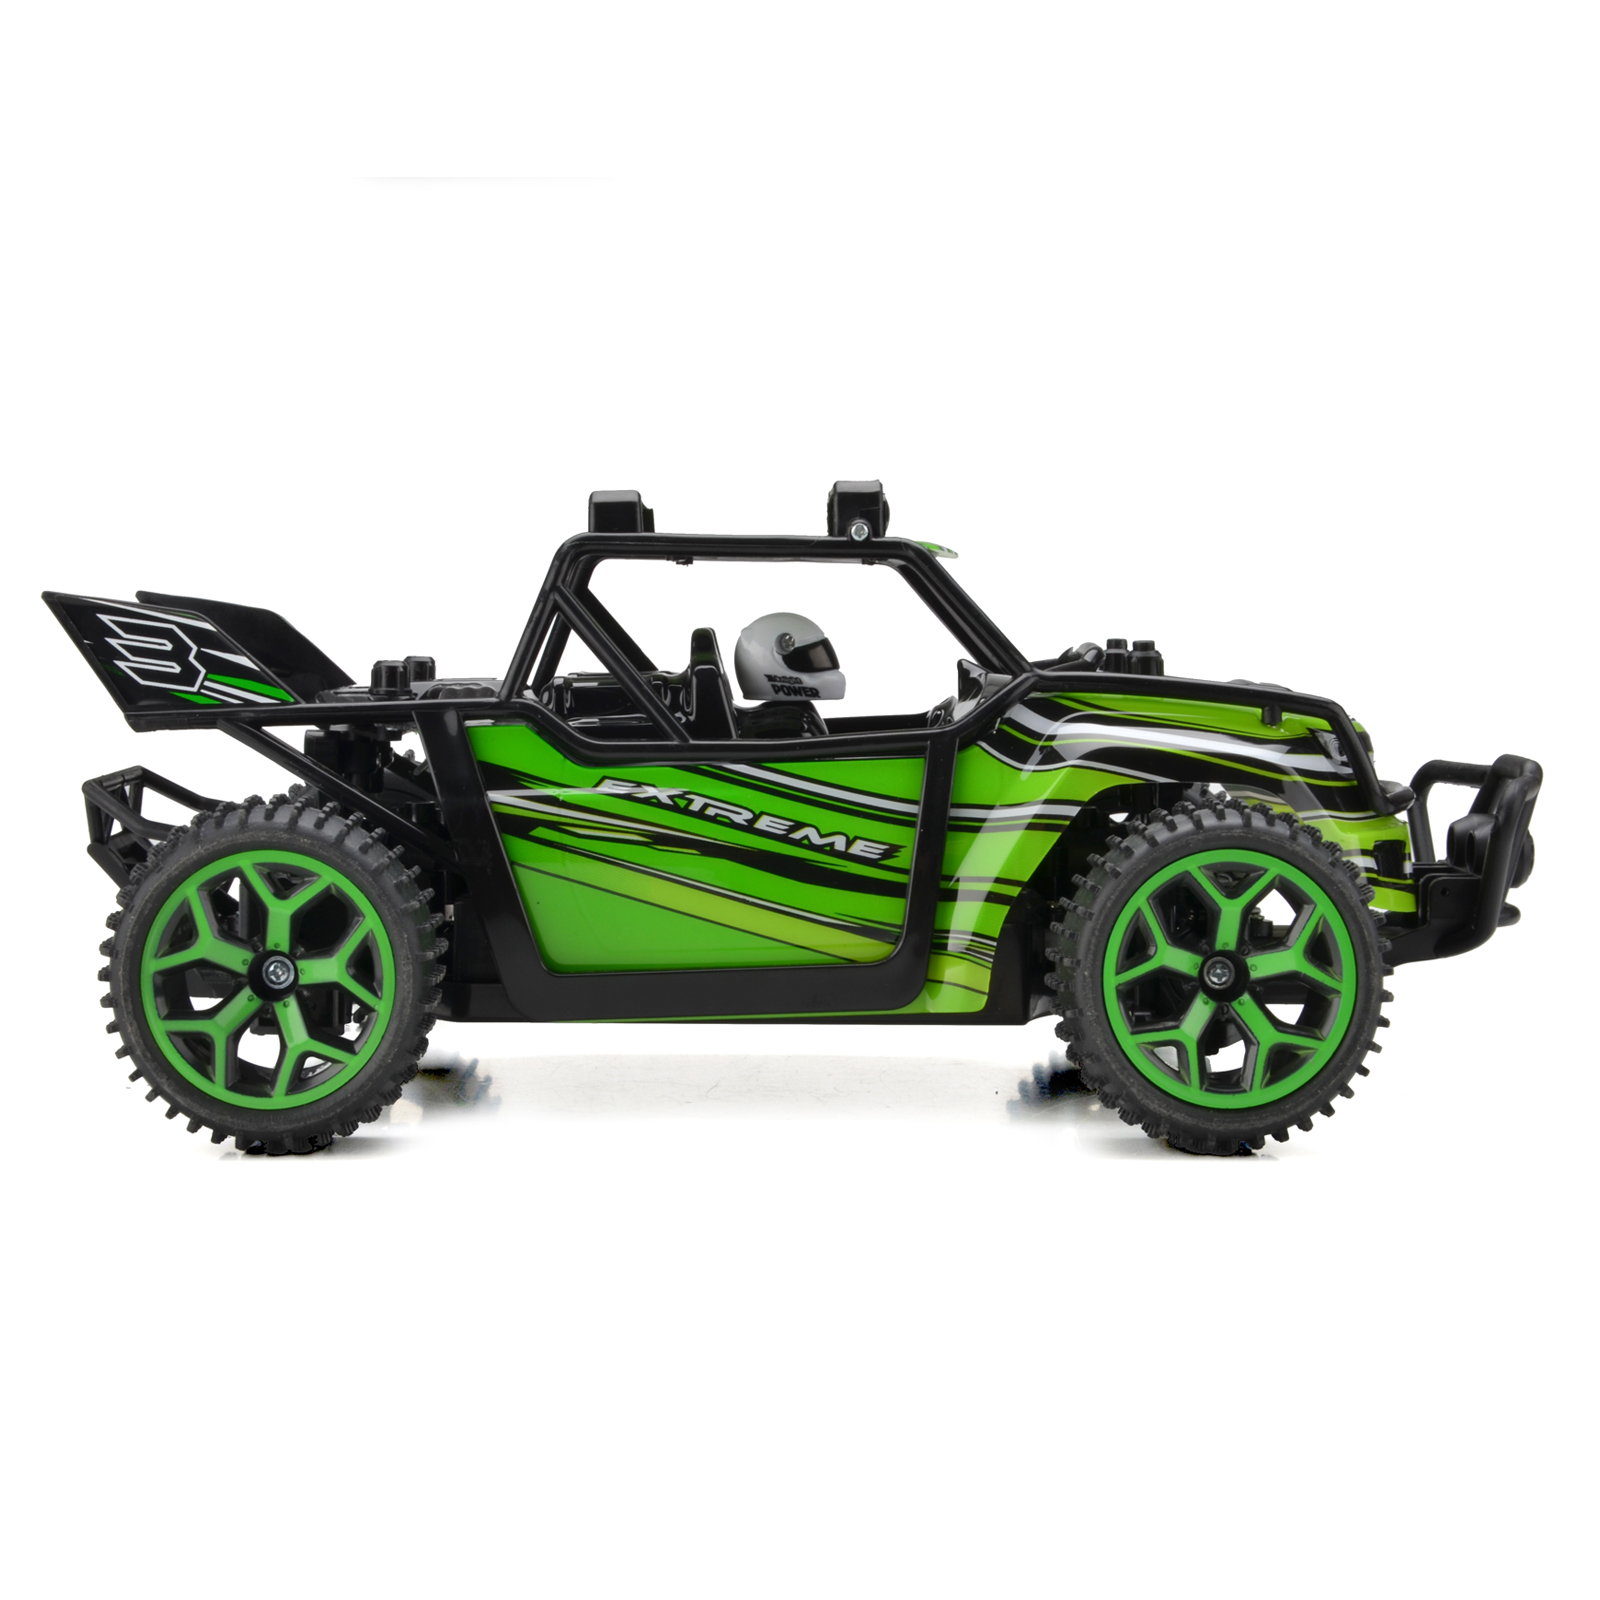 1 18 rc truck with 292037040574 on Welly Porsche 911 Carrera 1973 1op18 P 25579 in addition Land Rider 503 likewise Exclusive Pro Line Ambush New Rtr Rock Crawler Video in addition HB 1 18 2 4G 4WD Rock Crawler RC Car P1801 03 also Rc Truck Bag.